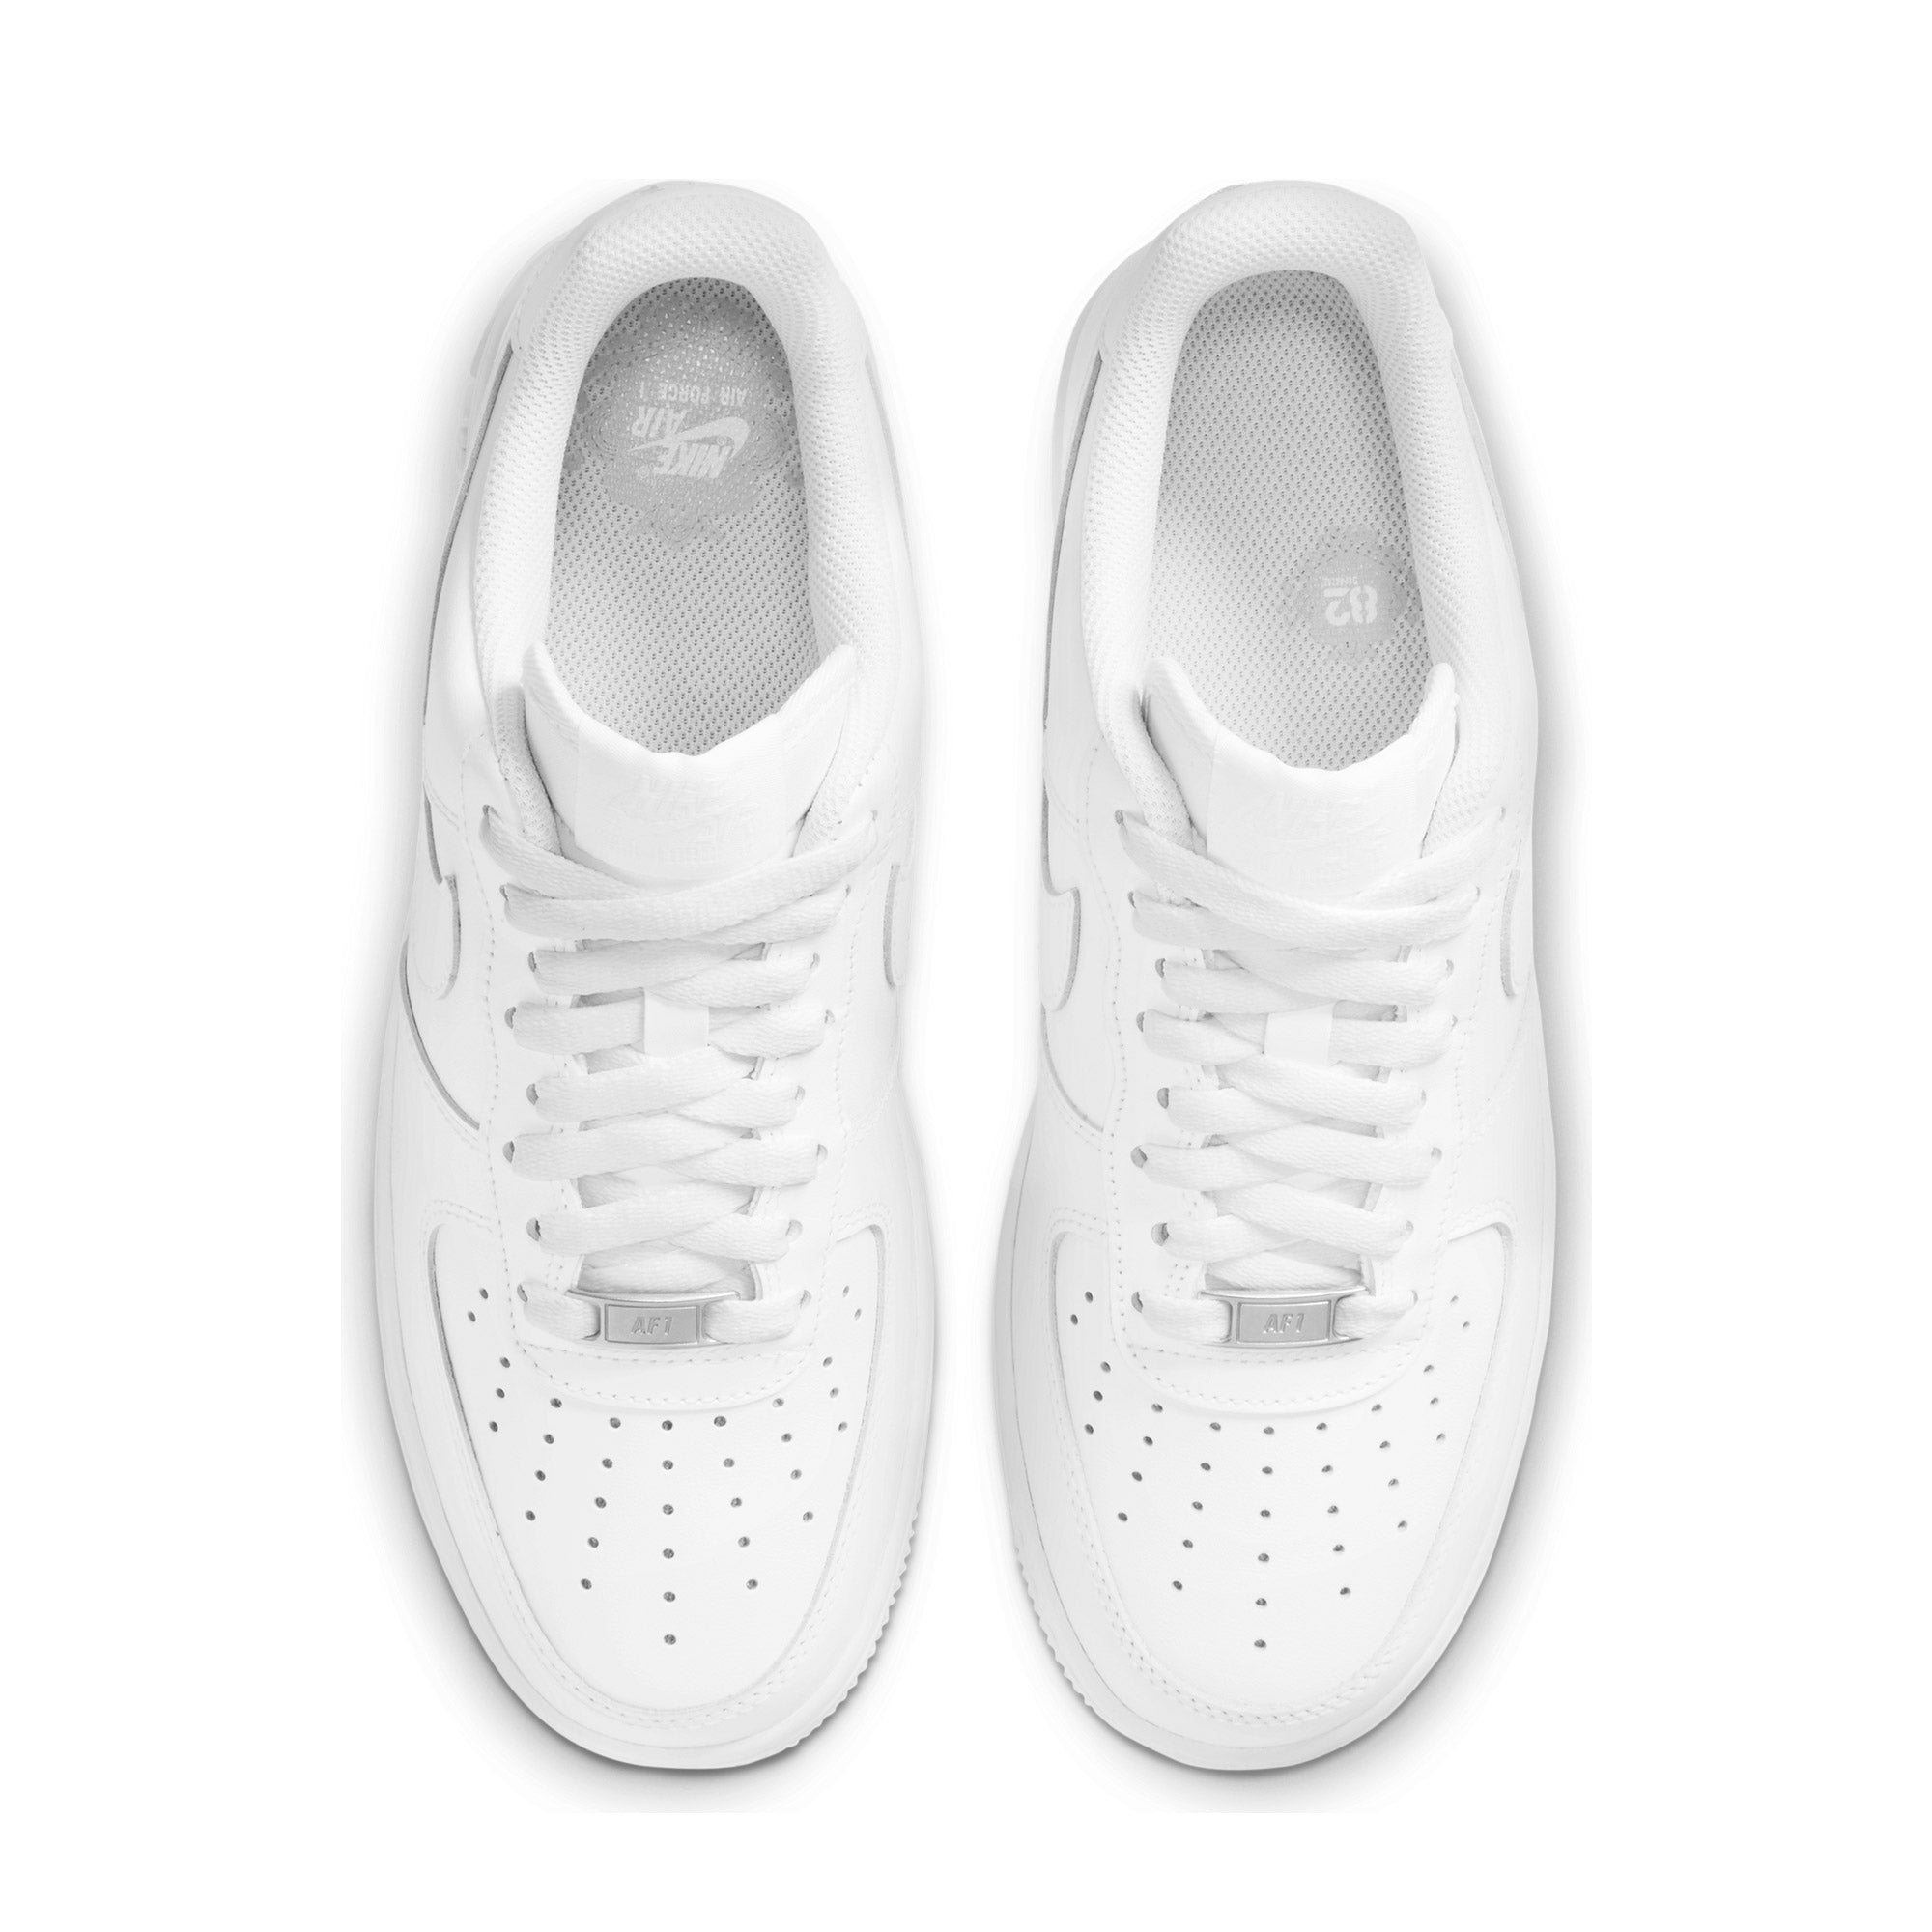 WMNS Air Force 1 DD8959-100 White